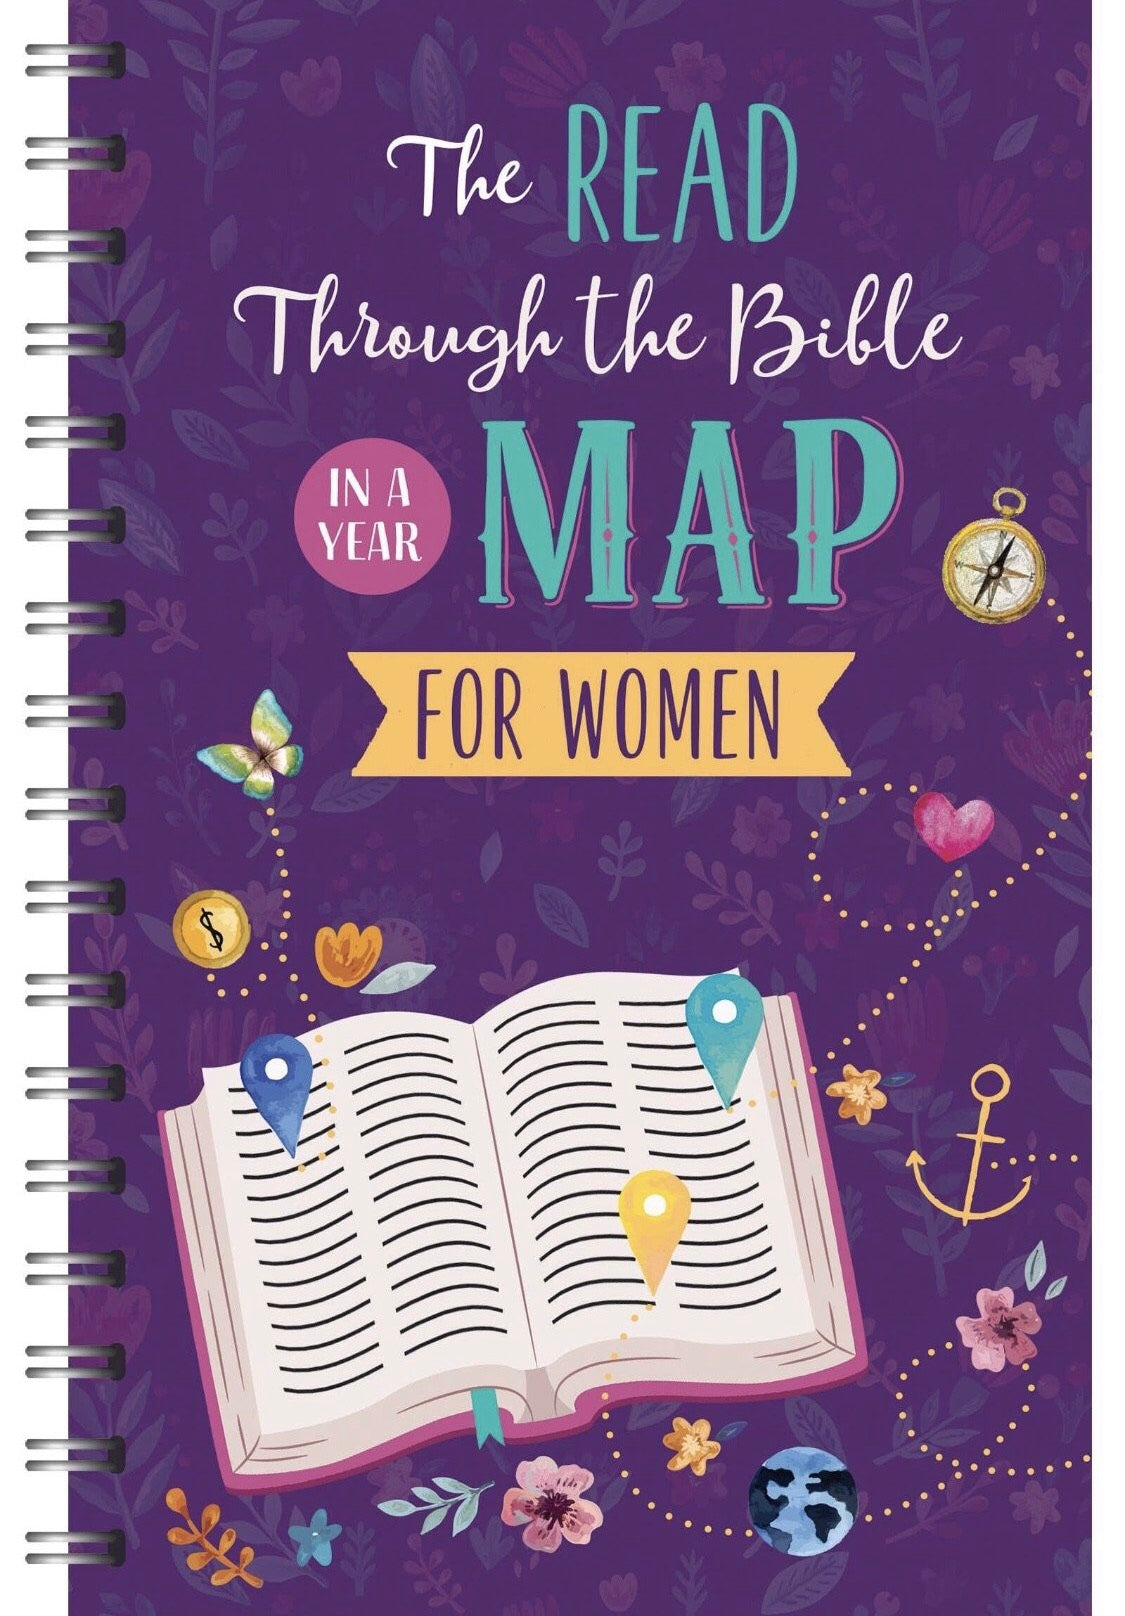 The Read Through the Bible in a Year Map for Women